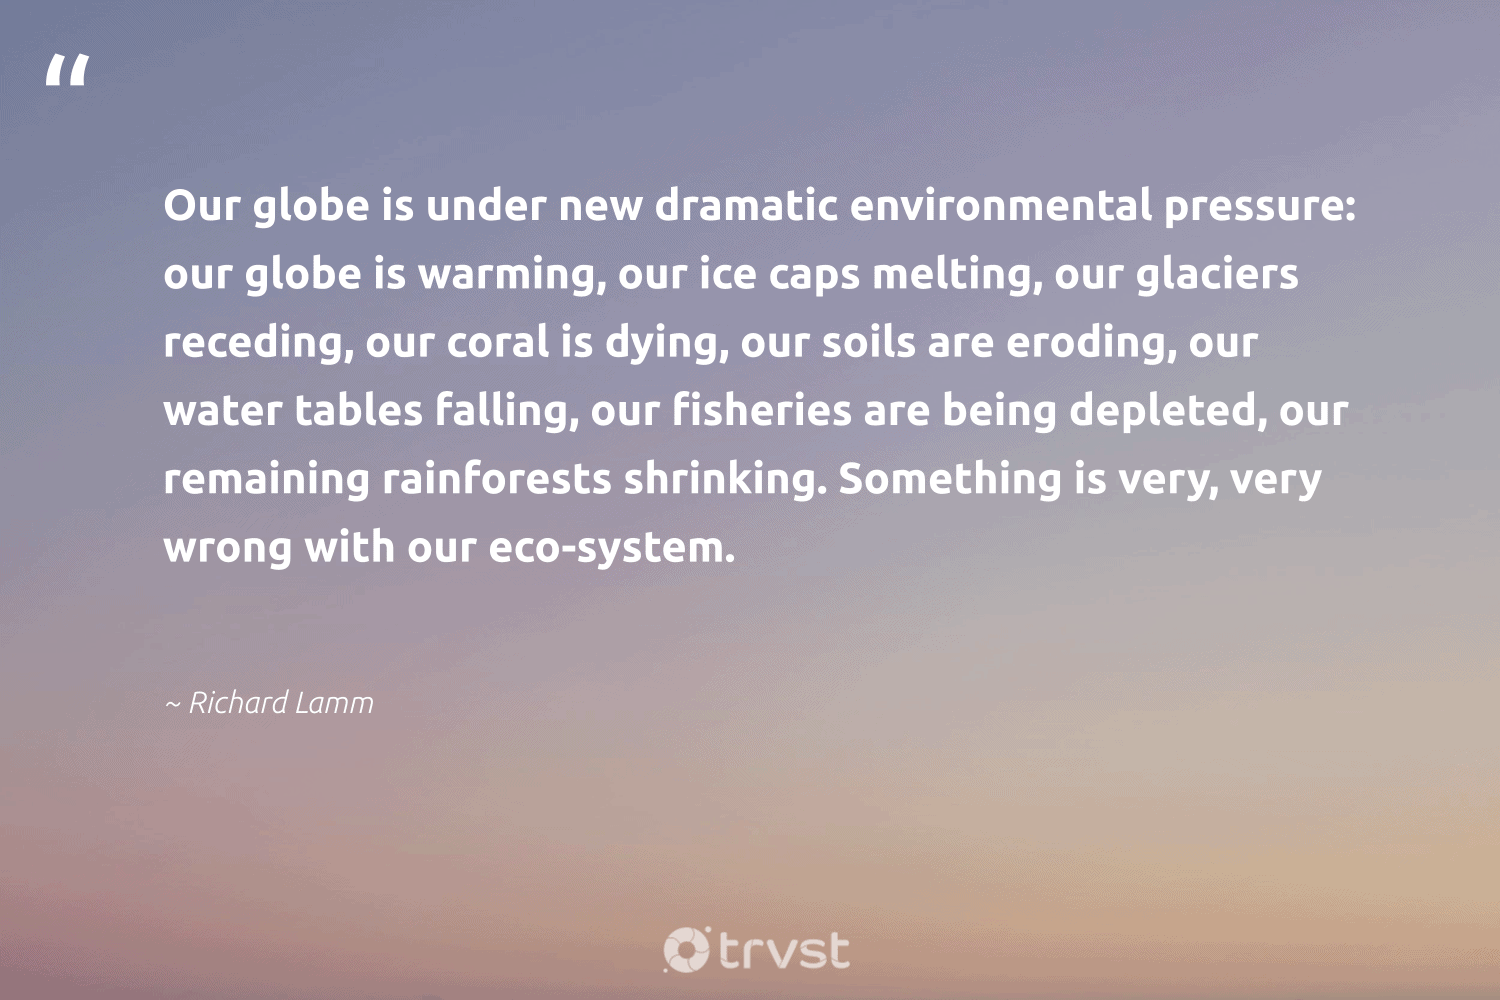 """""""Our globe is under new dramatic environmental pressure: our globe is warming, our ice caps melting, our glaciers receding, our coral is dying, our soils are eroding, our water tables falling, our fisheries are being depleted, our remaining rainforests shrinking. Something is very, very wrong with our eco-system.""""  - Richard Lamm #trvst #quotes #ocean #environmental #eco #water #river #sustainability #earth #dotherightthing #oceanpollution #wildlifeplanet"""